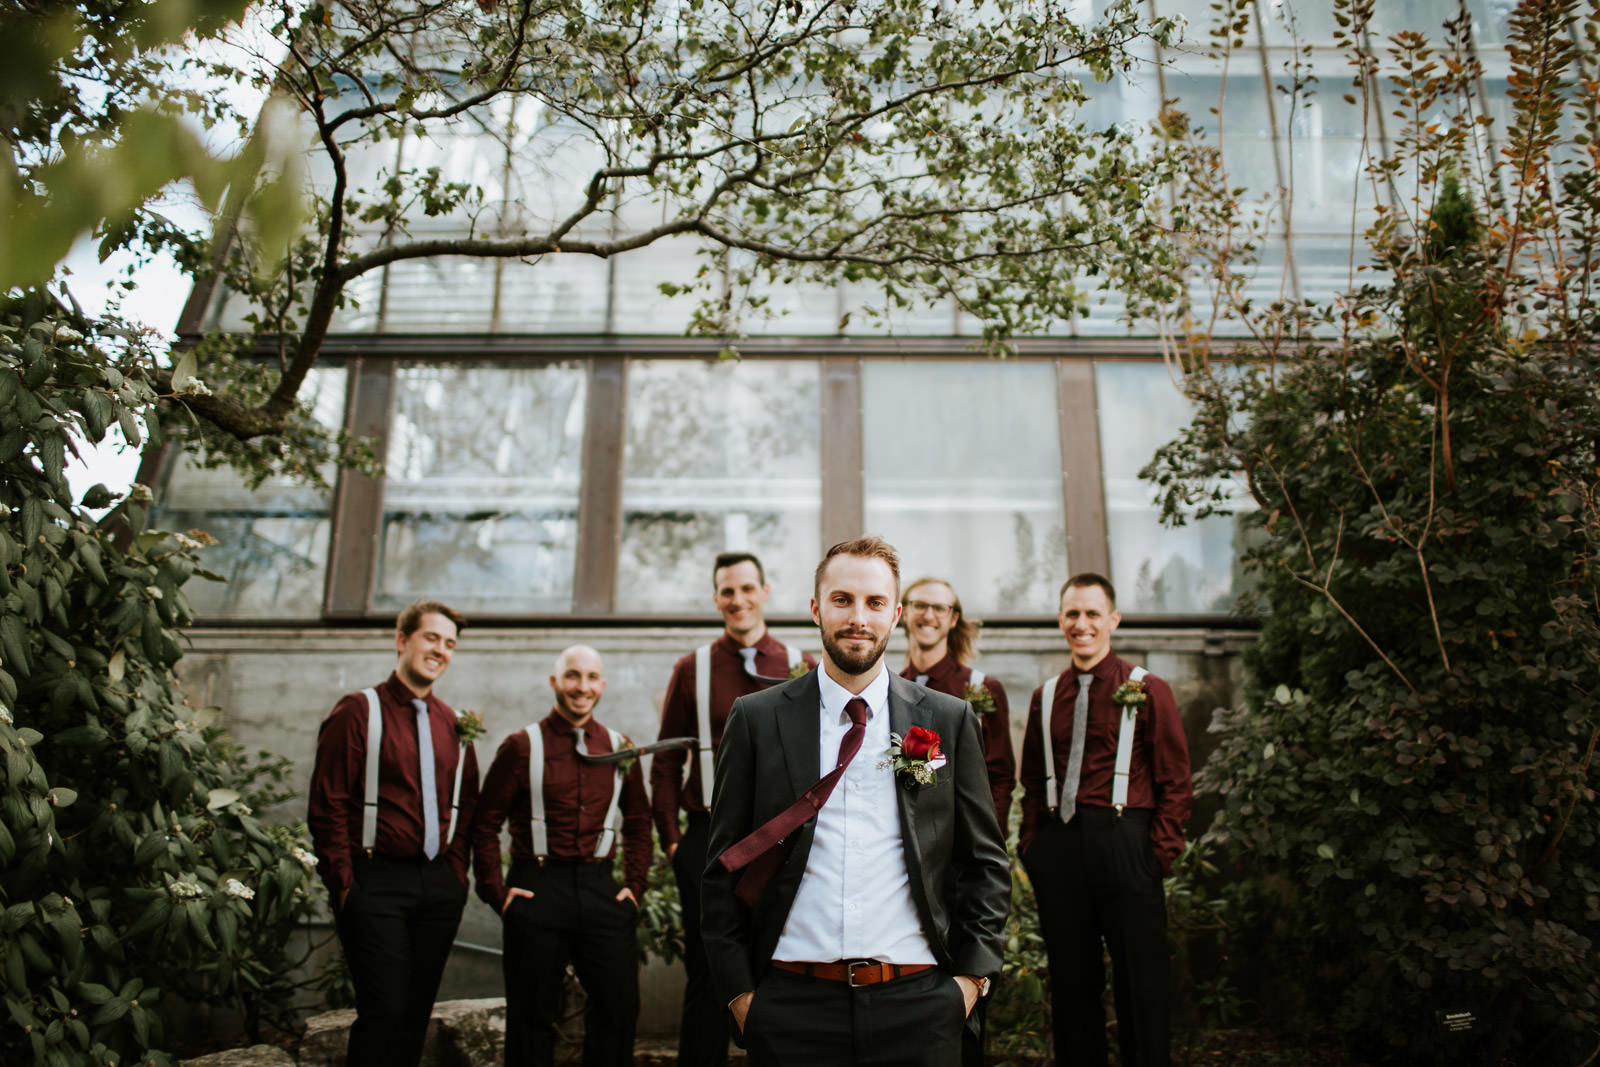 Groom and groomsmen portrait take during the wedding at Garfield Park Conservatory